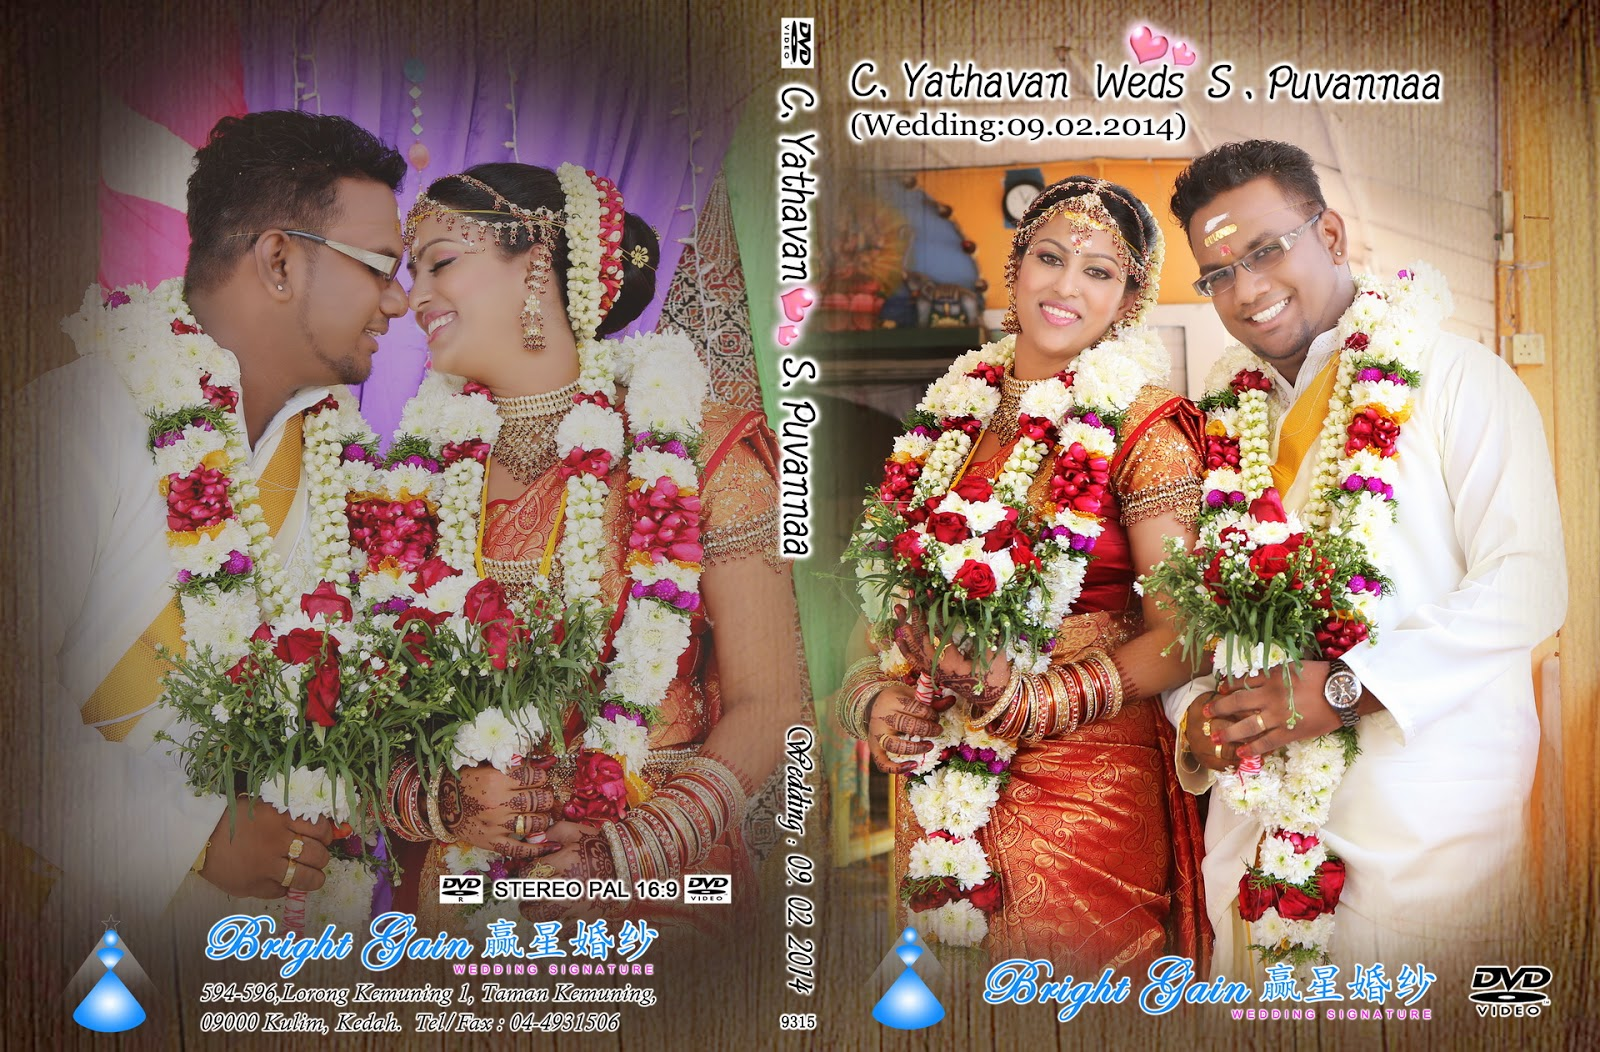 Ncde love video image house cyathavan s puvannaa 09 feb 2014 bright gain bridal wedding signatures customervideo recording an official videographer of bright gain wedding signature kulim kedah junglespirit Image collections